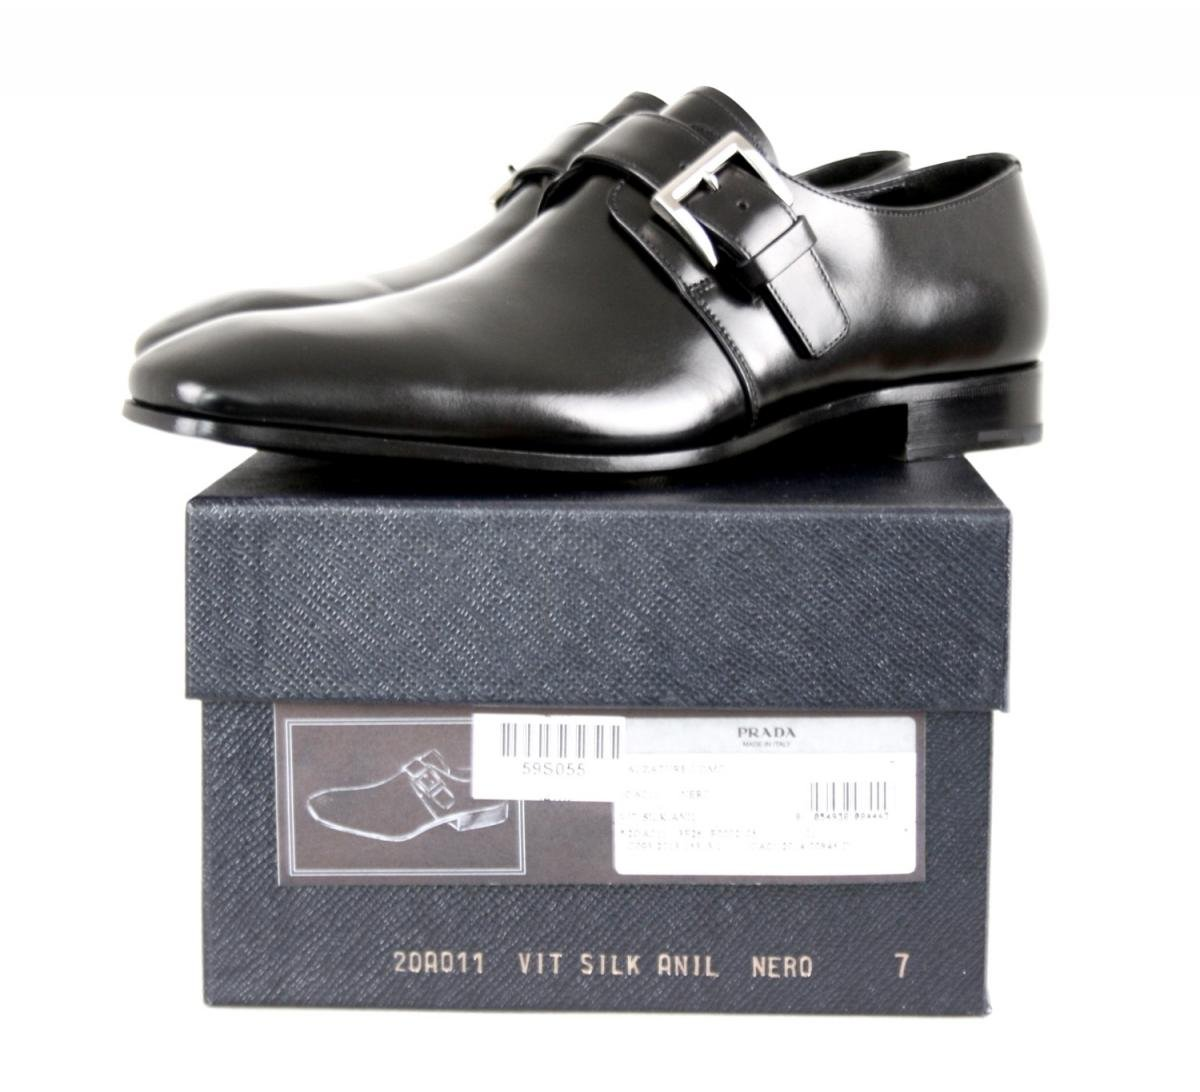 Prada Men's 2OA011 Black Leather Business Shoes EU 9.5 (43,5) / US 10.5 by Prada (Image #9)